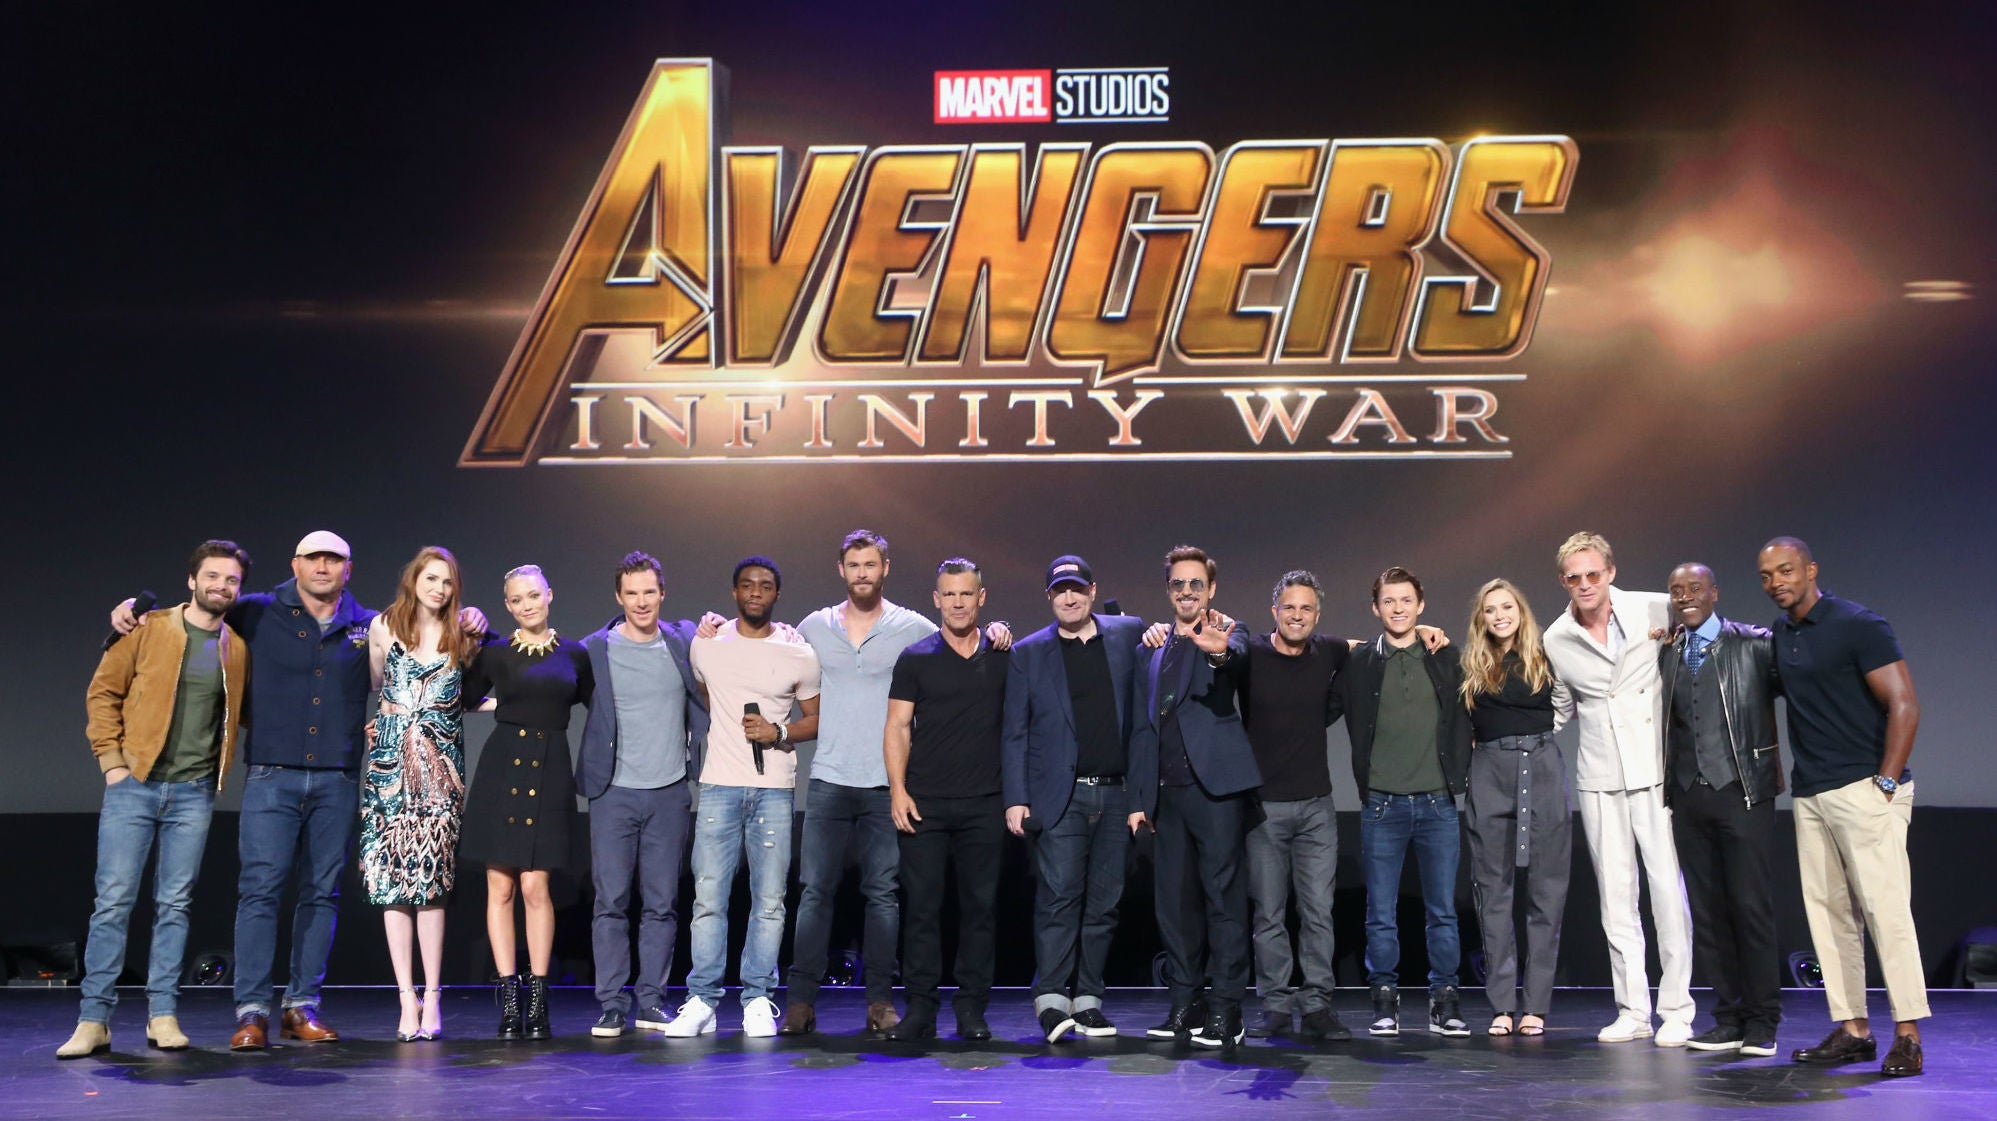 Academy Assembling Avengers At Awards Amphitheater?